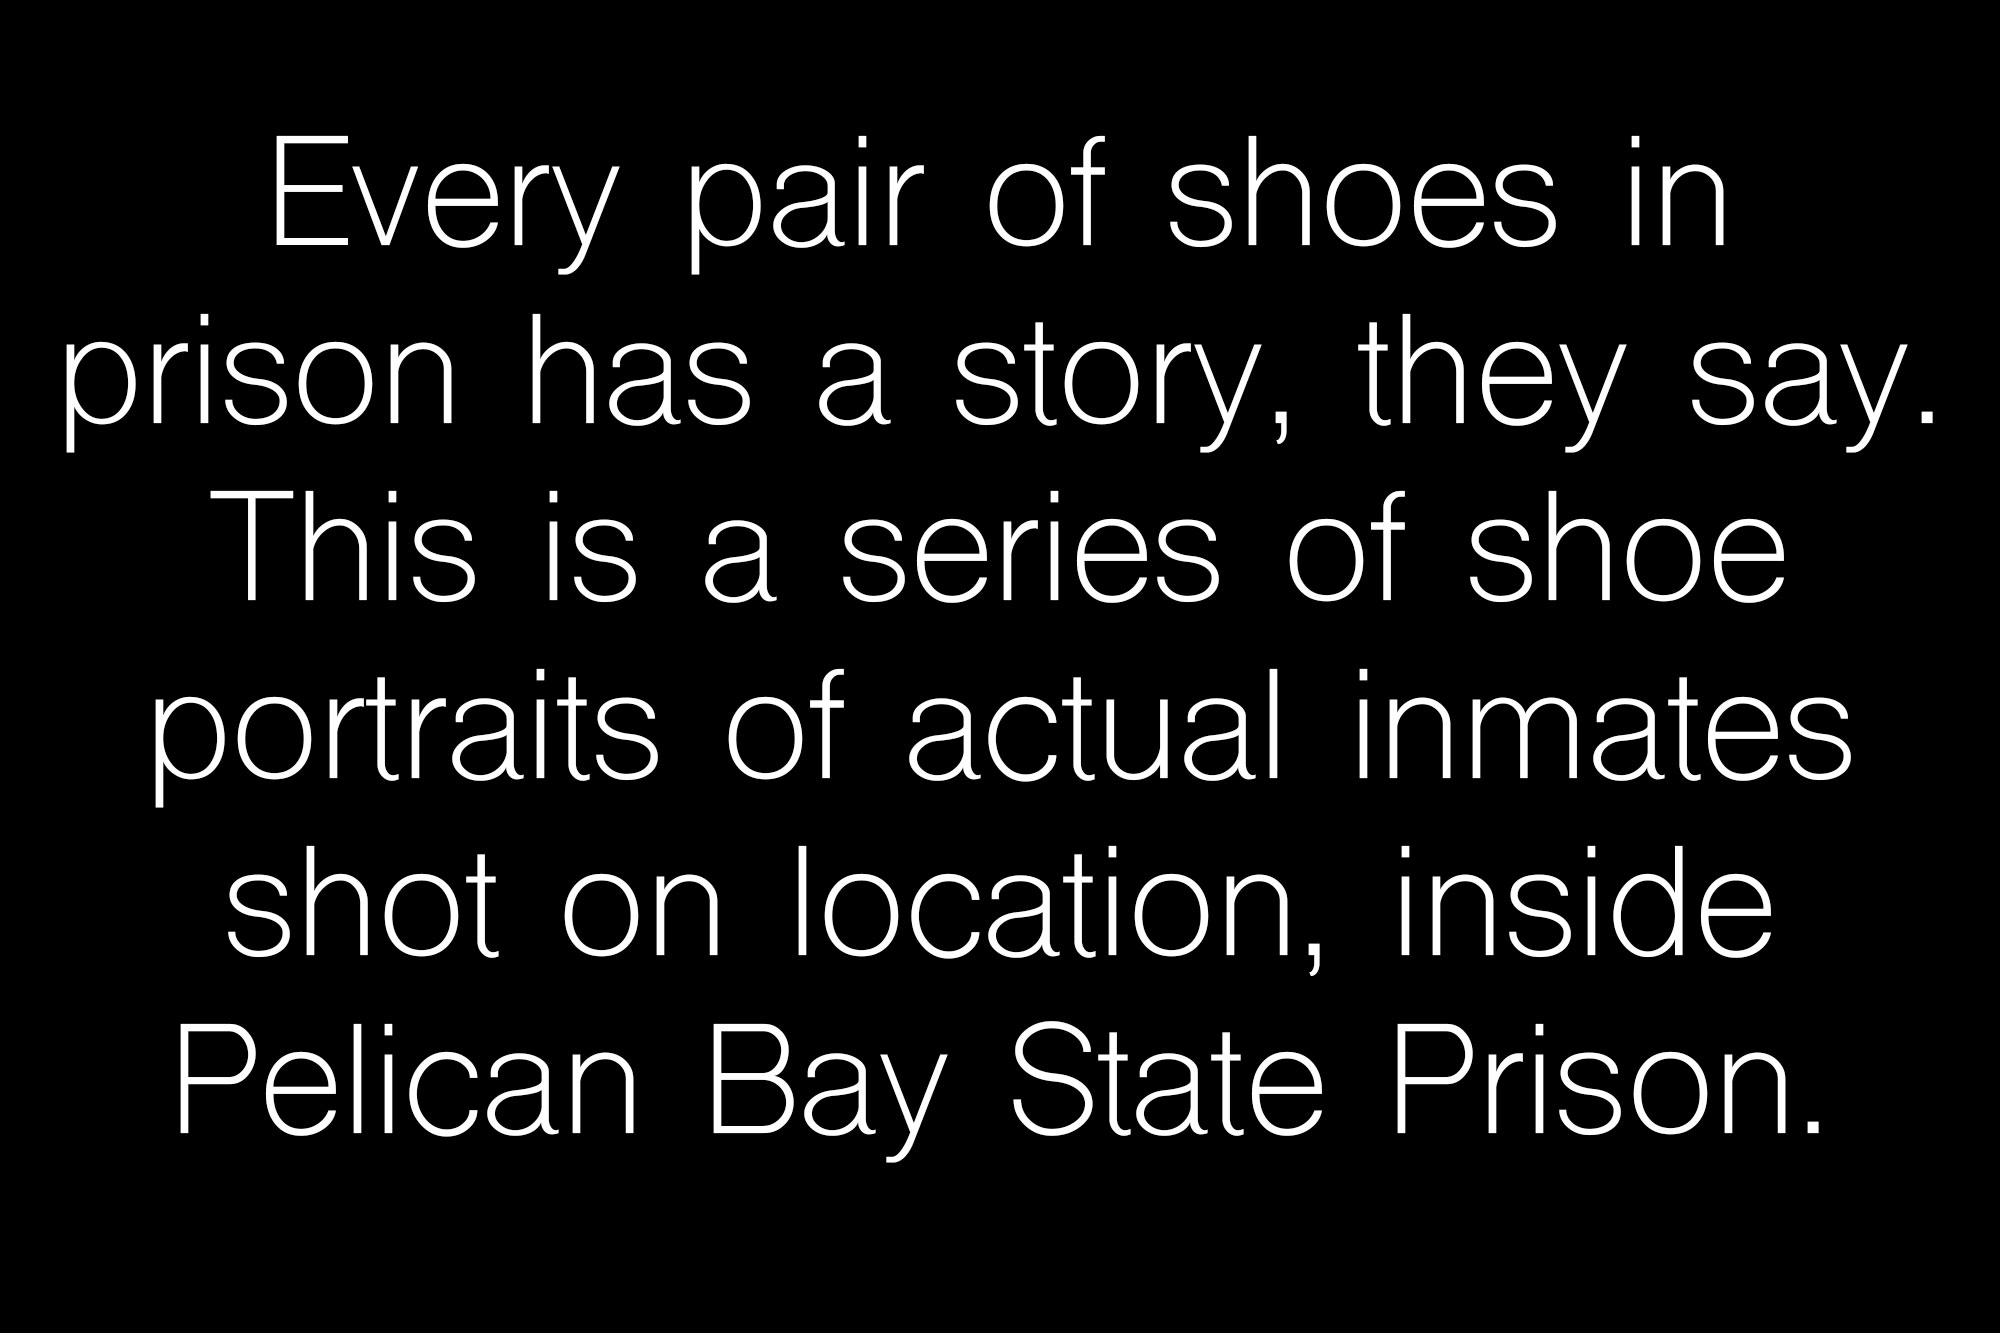 Pelican_Bay_Shoes_Text-1